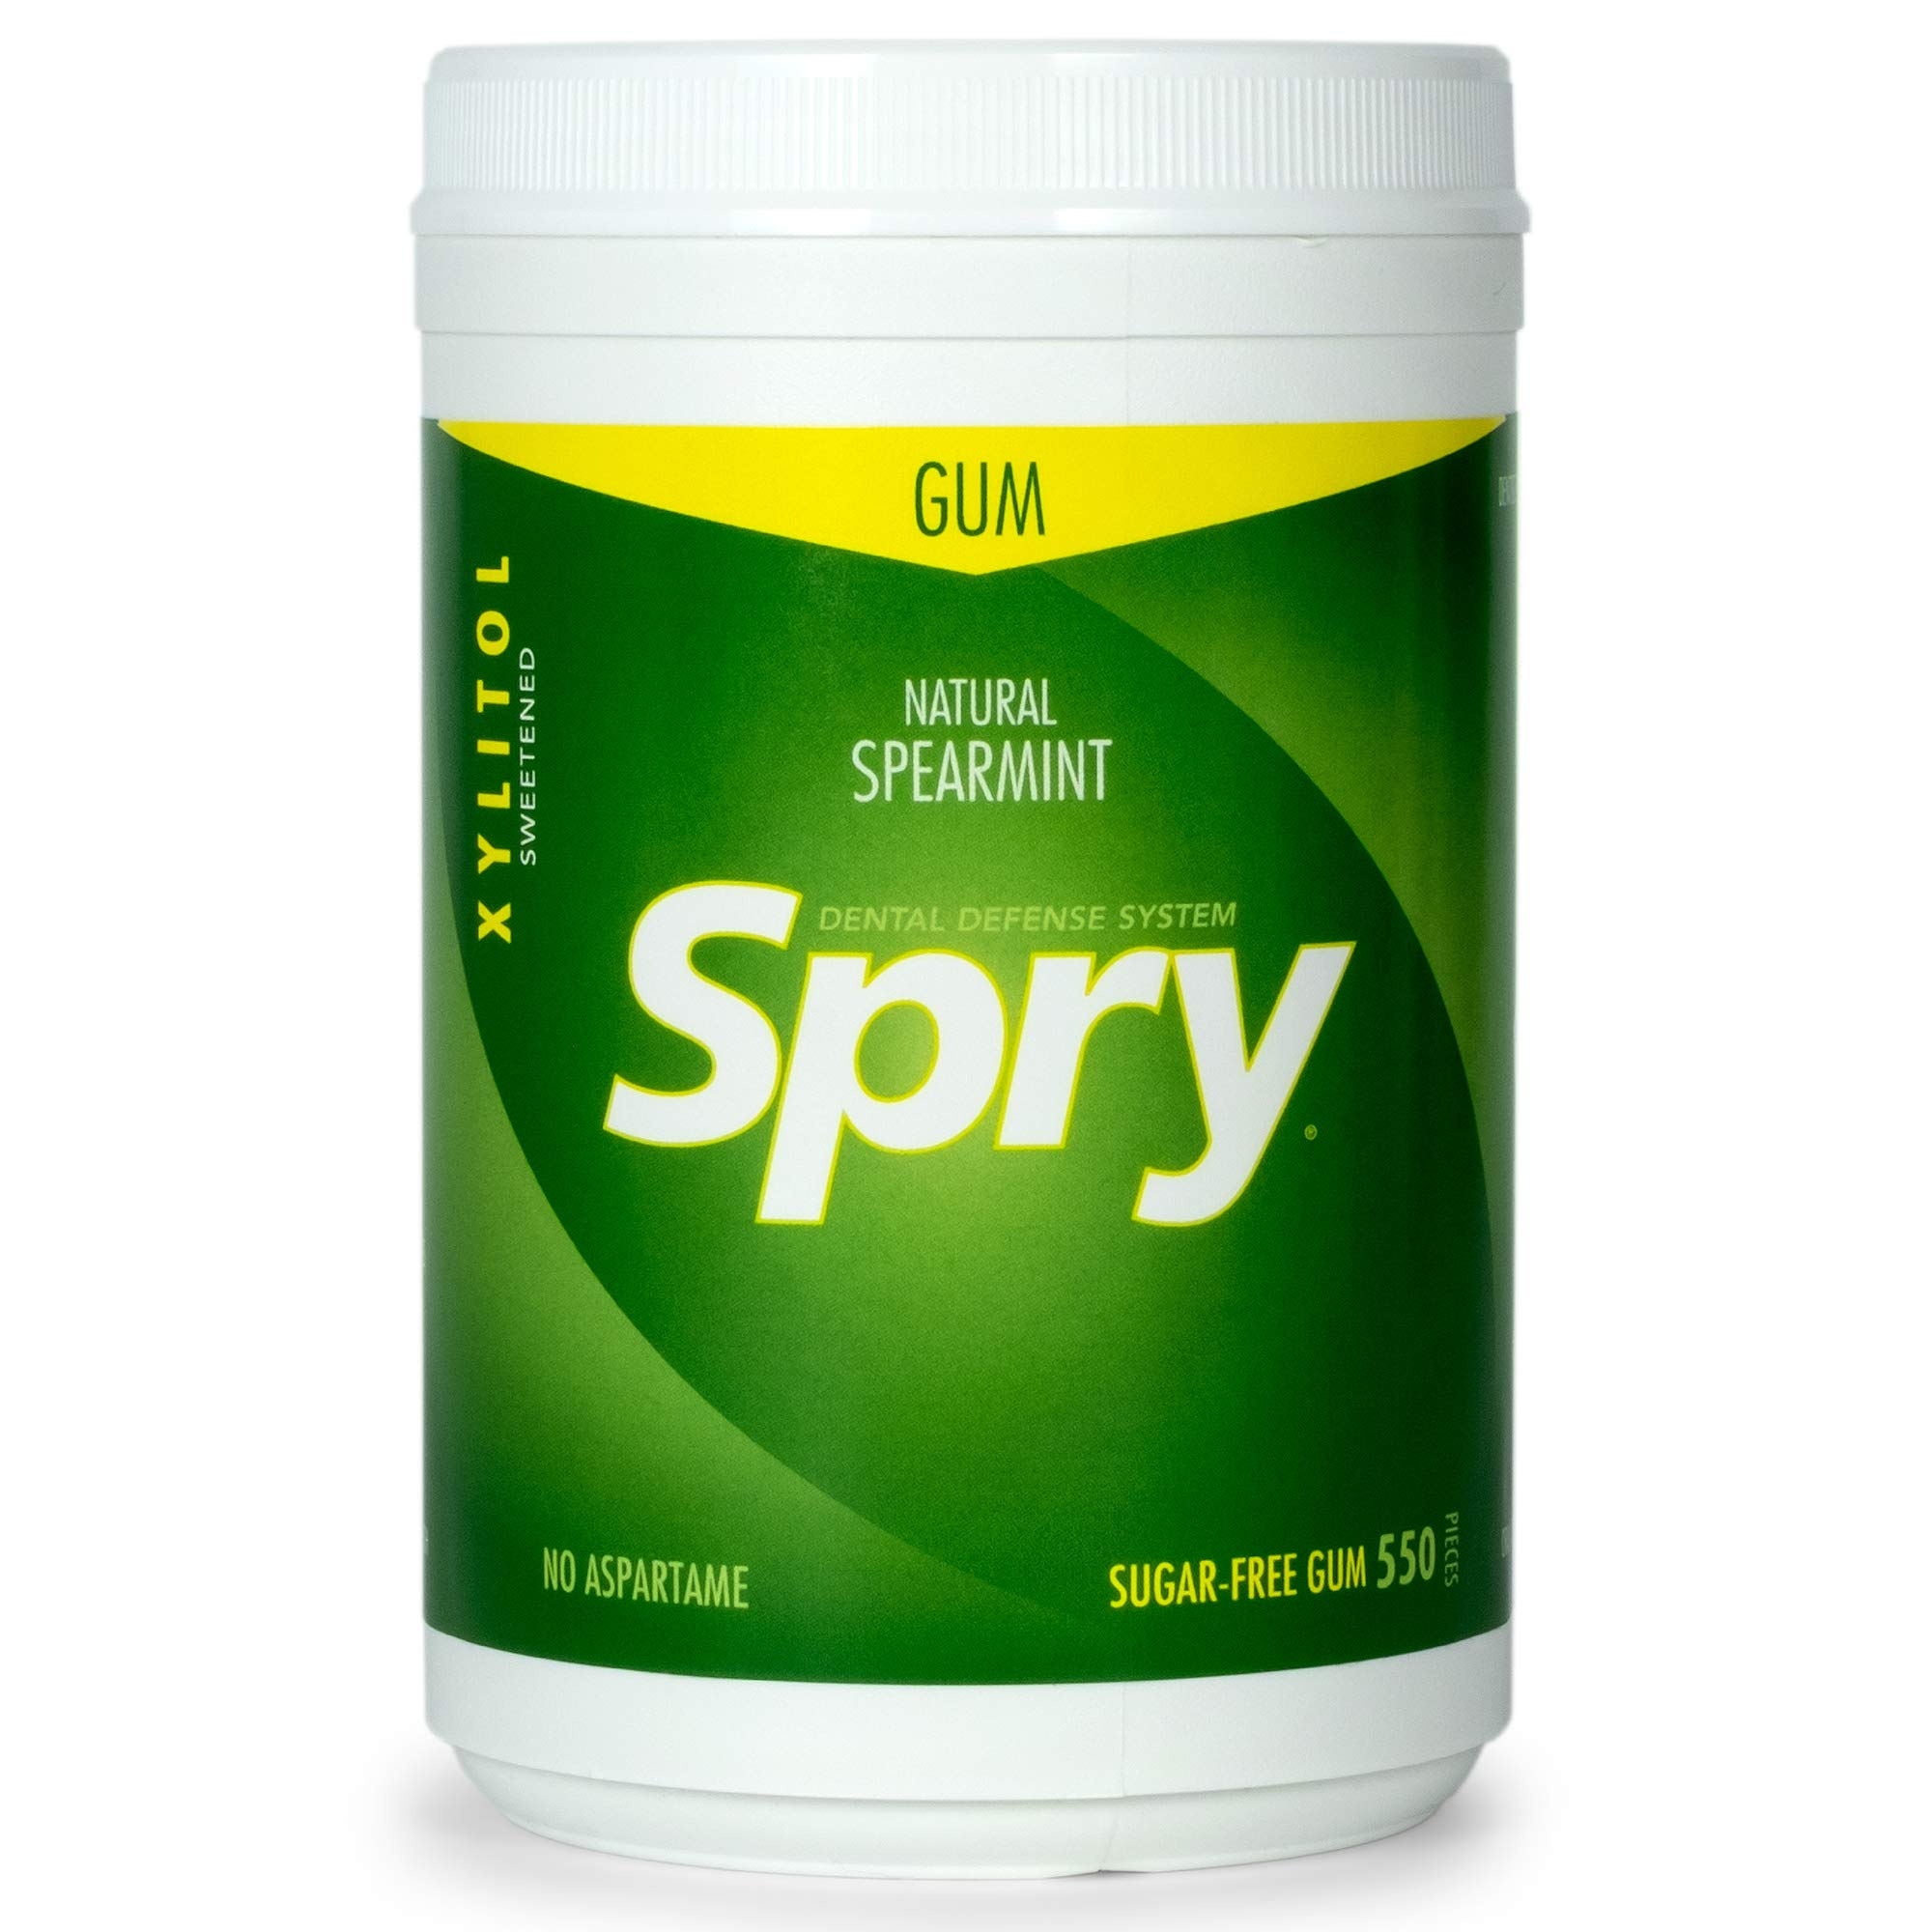 Spry Fresh Natural Spearmint Gum, Natural Xylitol Chewing Gum, 550 count